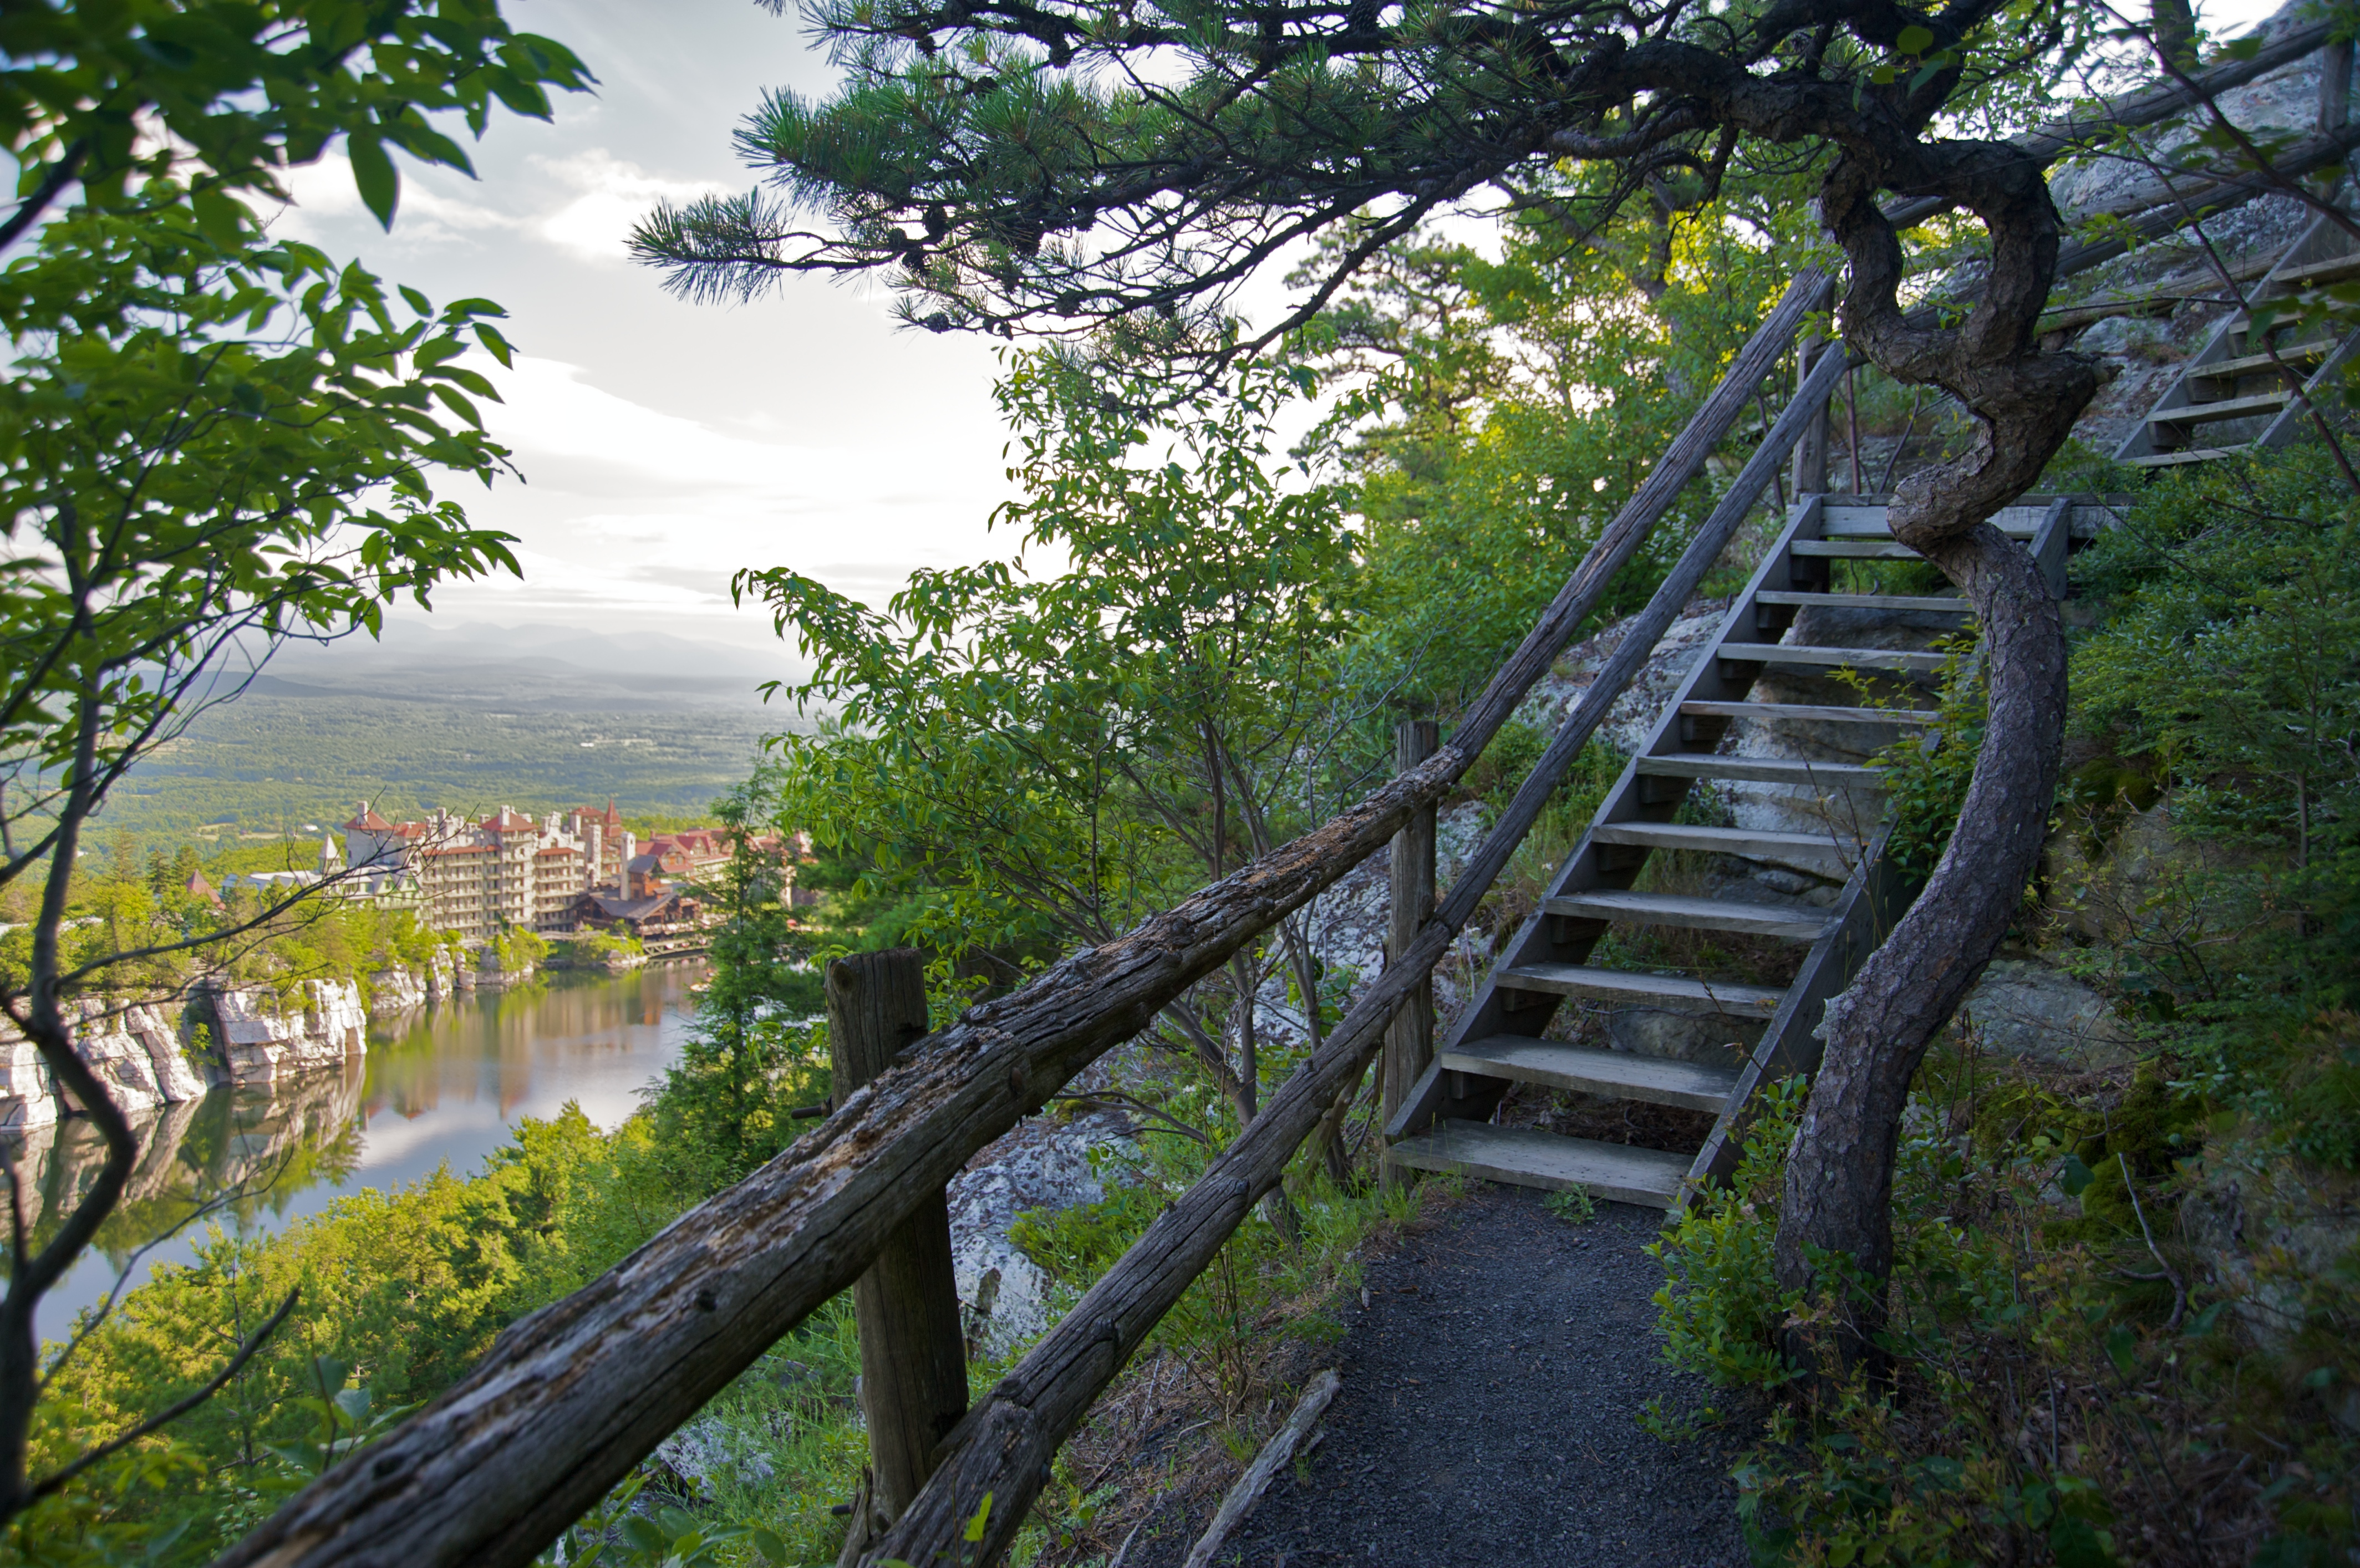 Staircase in woods overlooking lake and castle